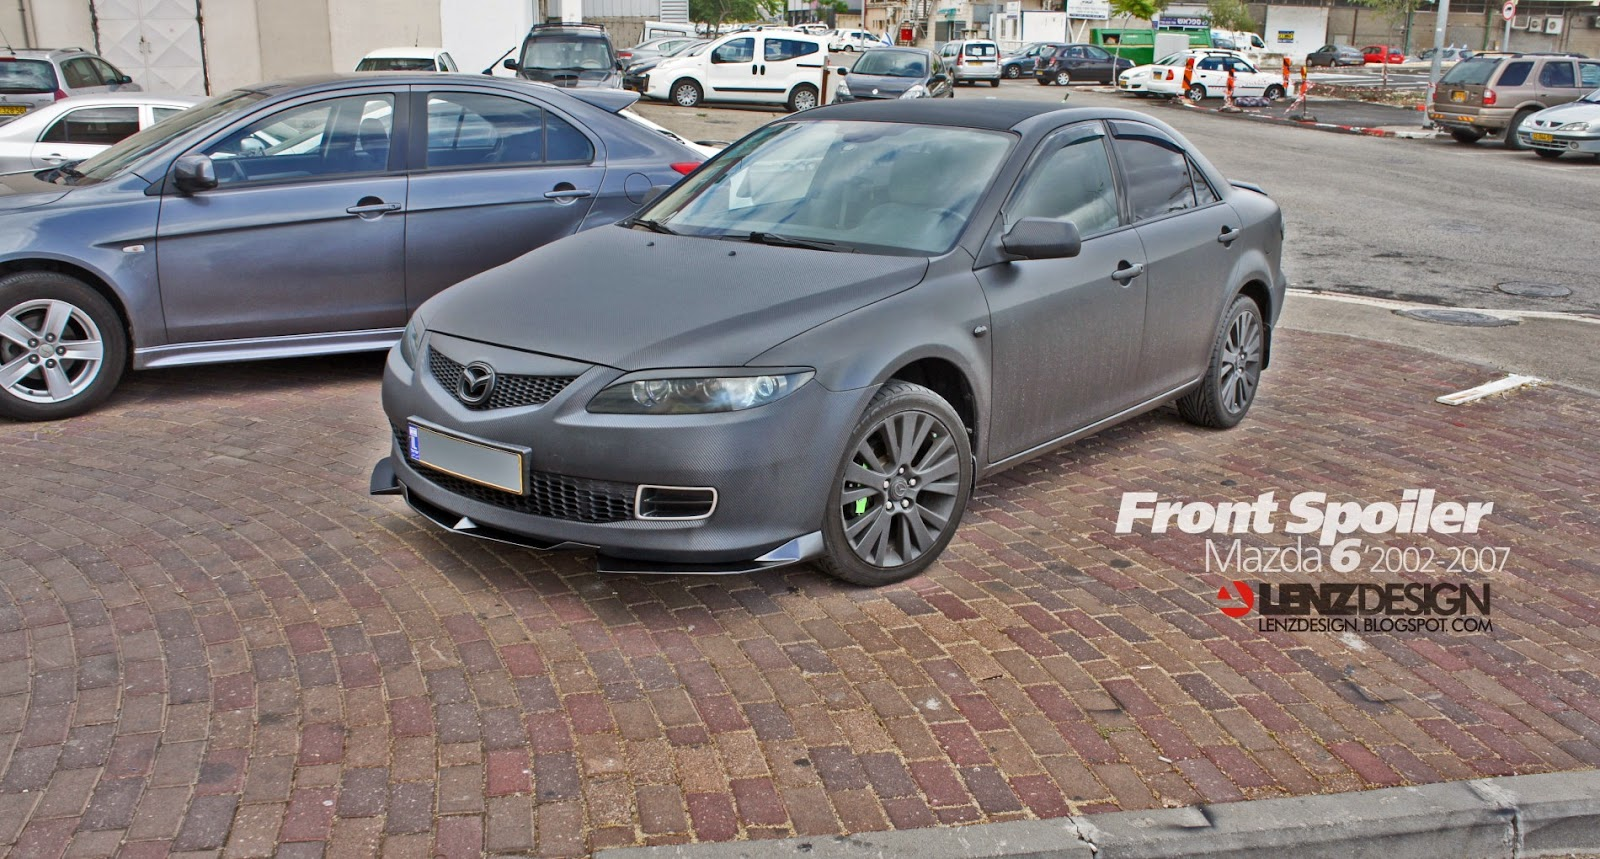 mazda 6 2002 2007 front spoiler lenzdesign performance israel tuning project. Black Bedroom Furniture Sets. Home Design Ideas